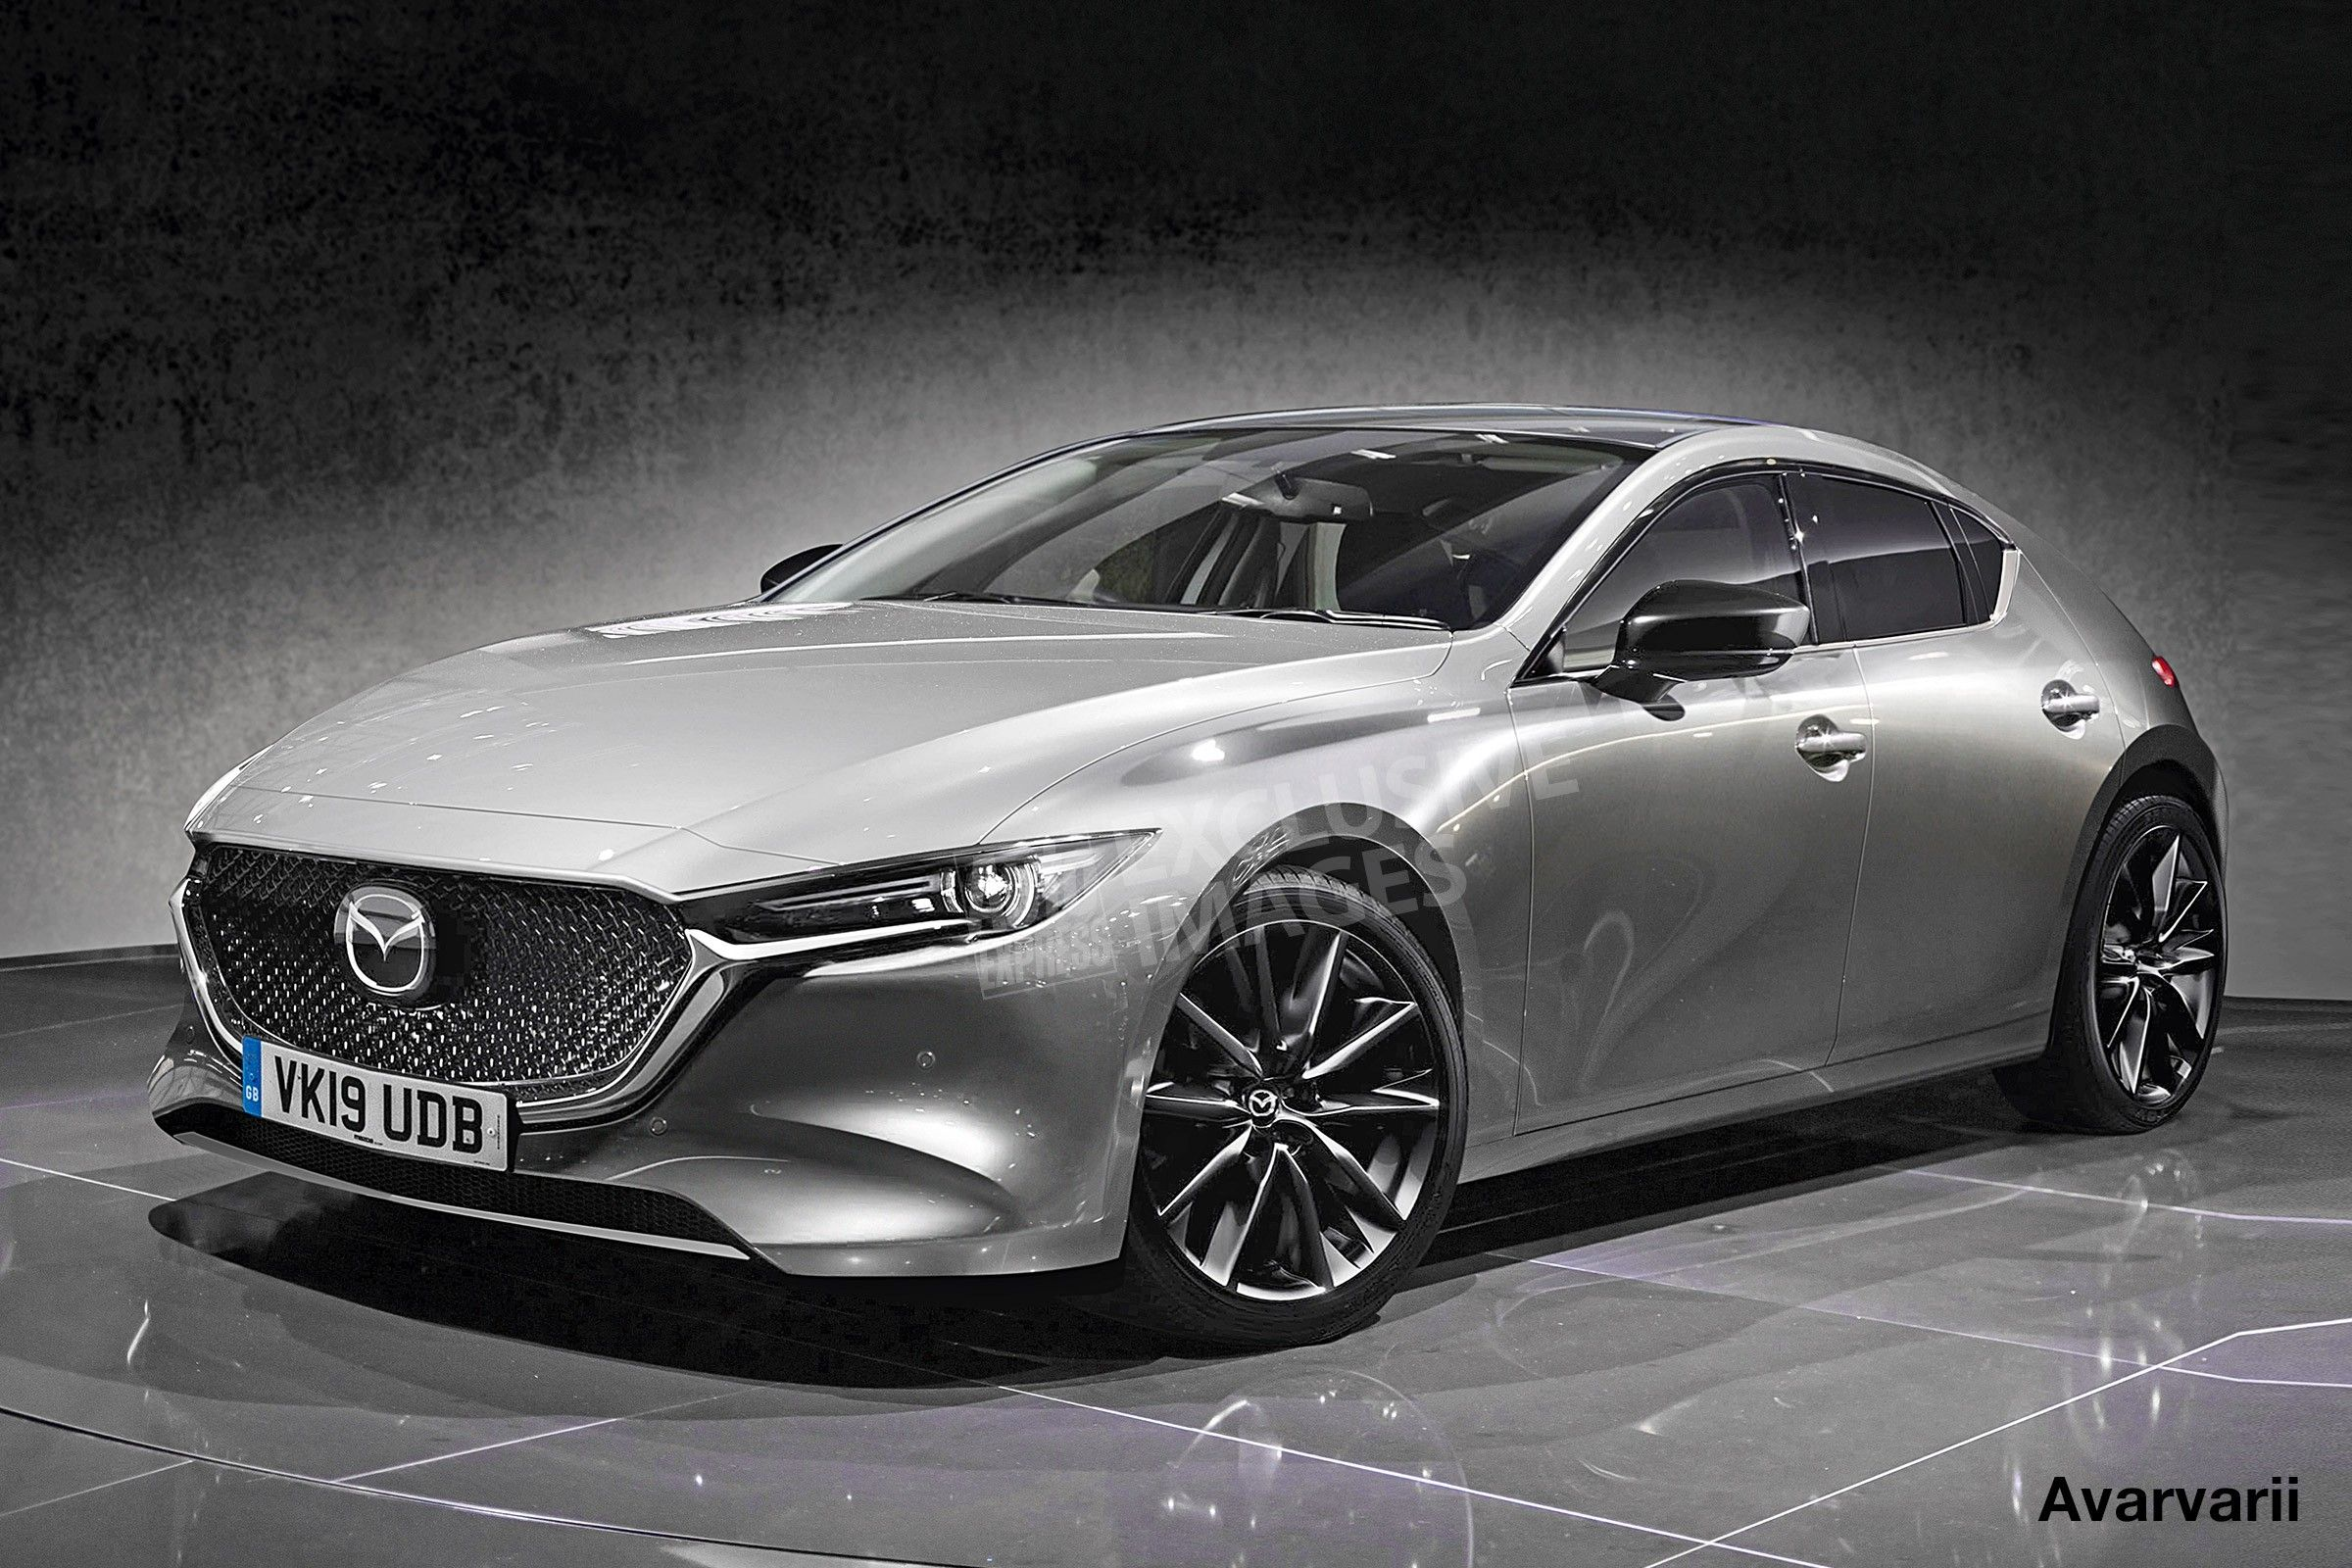 2019 Mazda 3 Hatchback Redesign Release Date Price >> 2019 Mazda Sport 6 New Review Mazda Hatchback Mazda 3